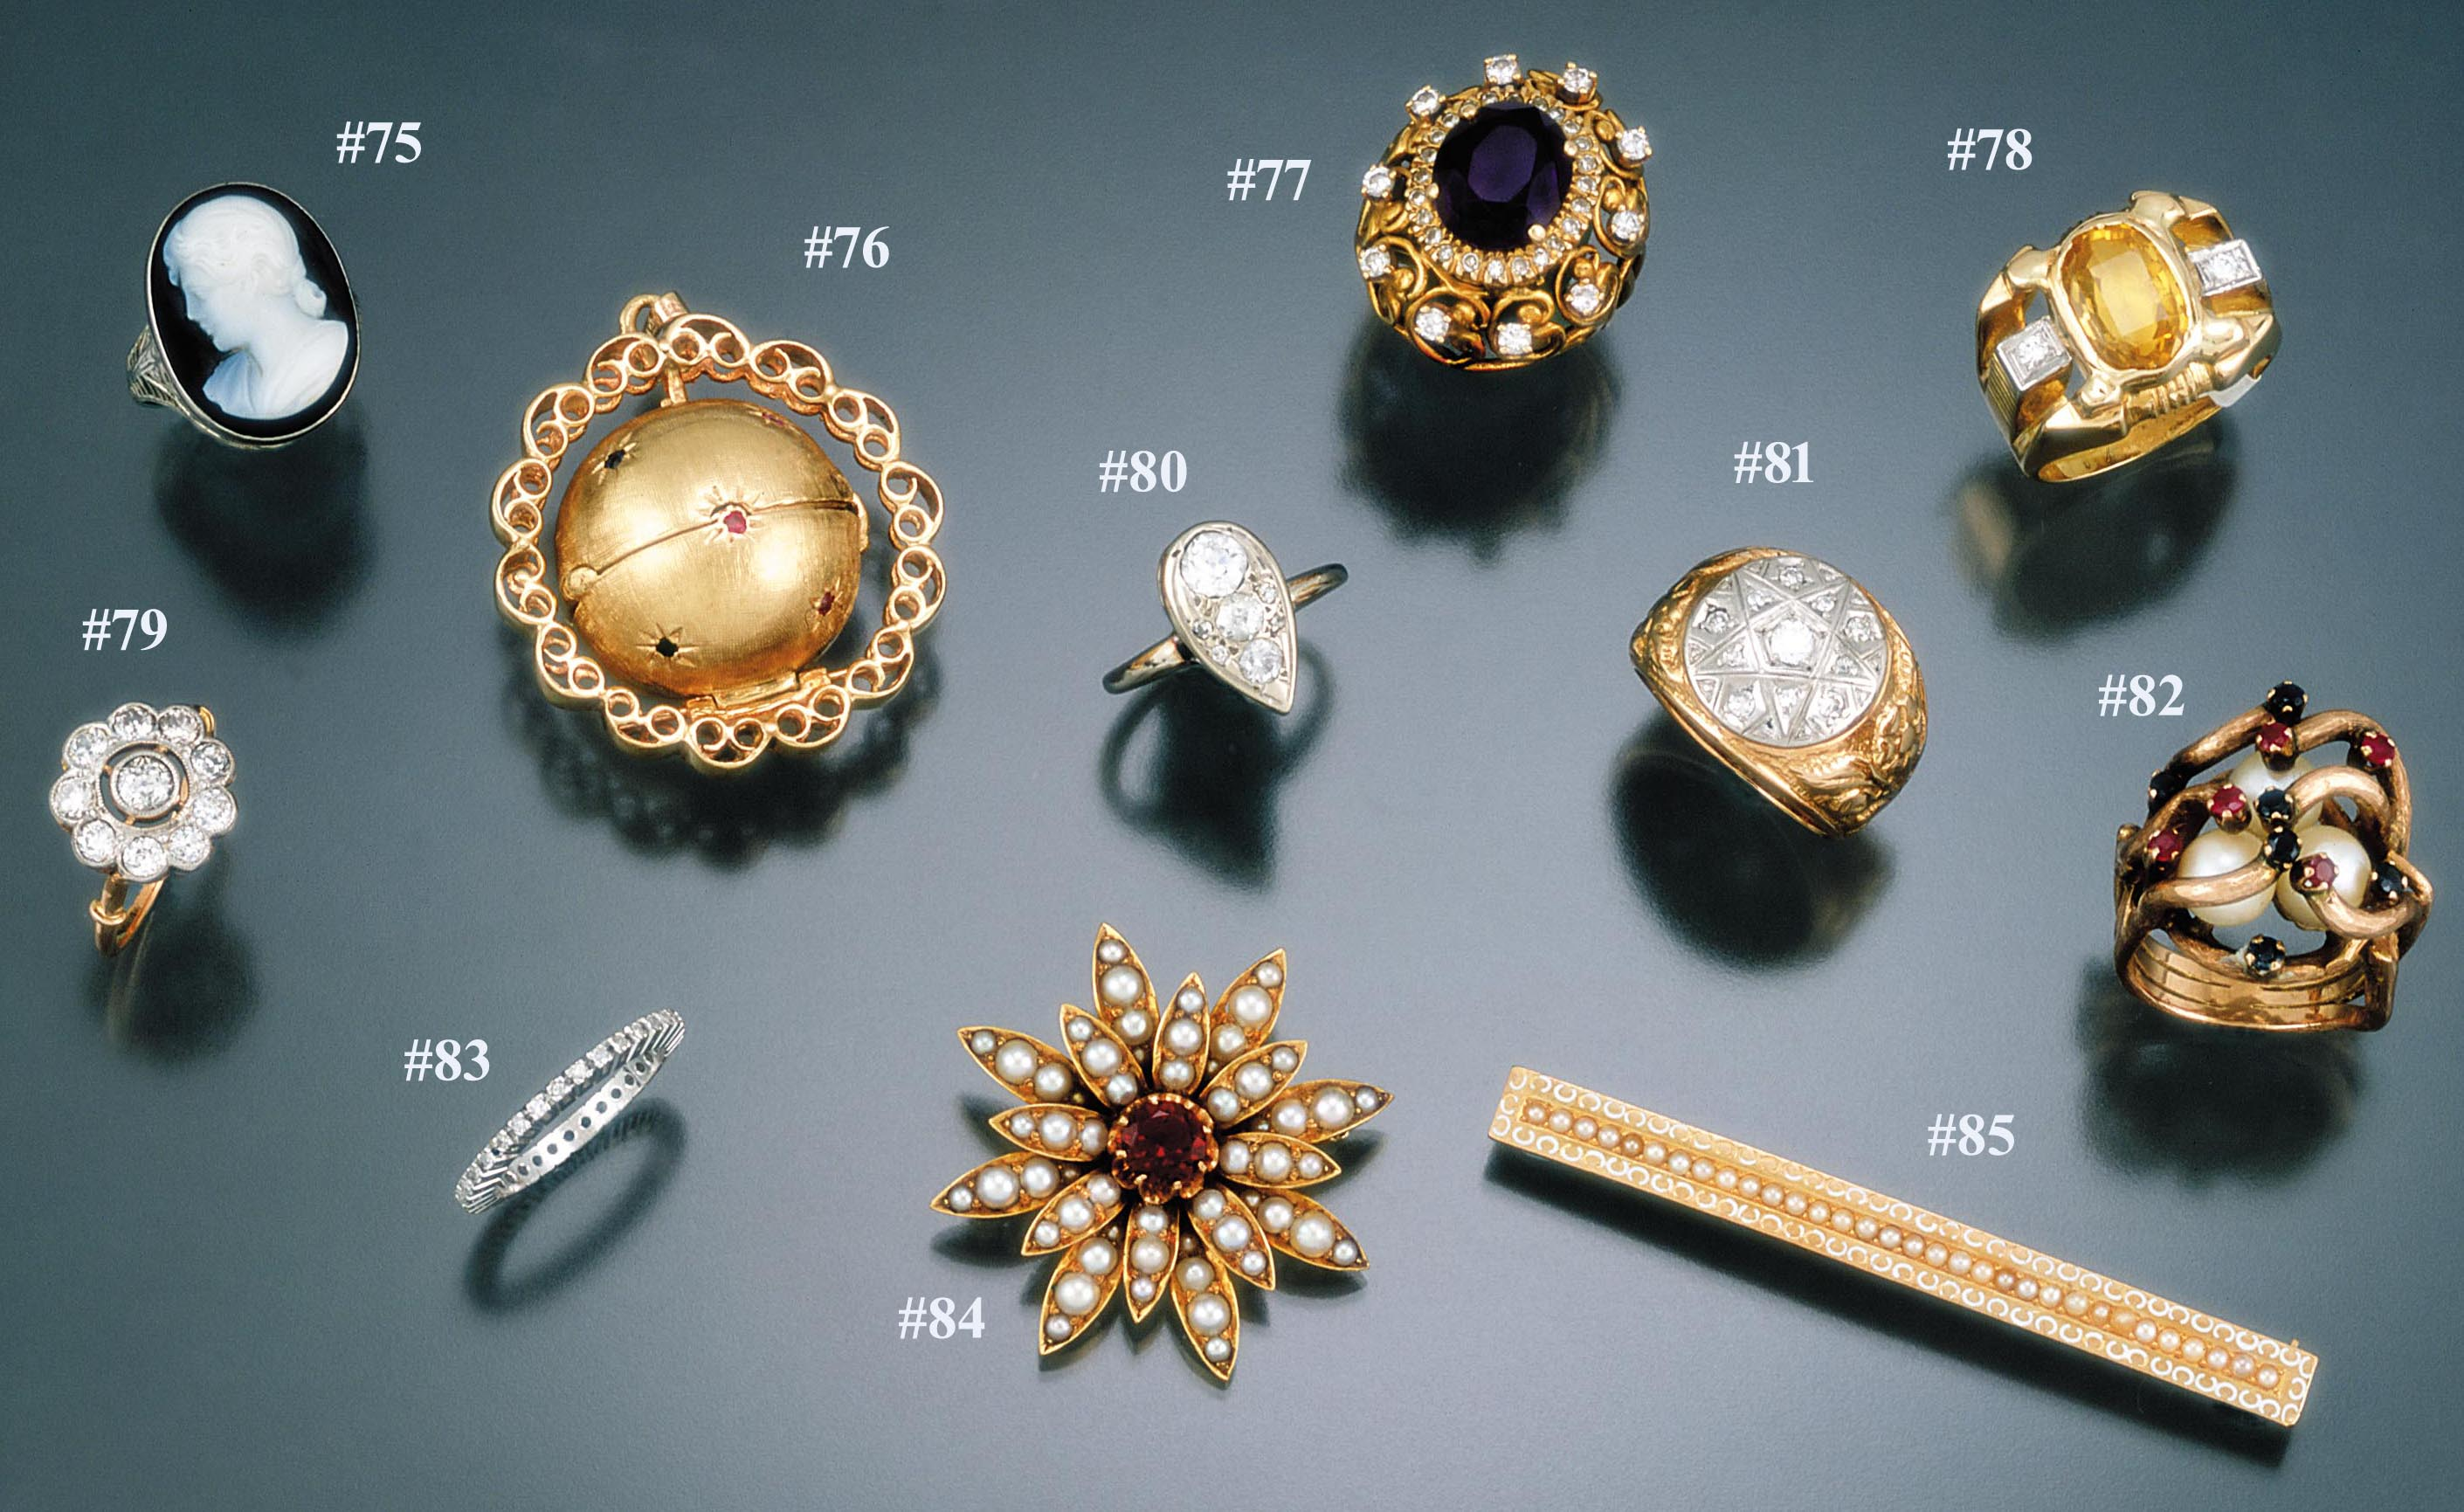 Antique Watches & Jewelry from Ashland Investments